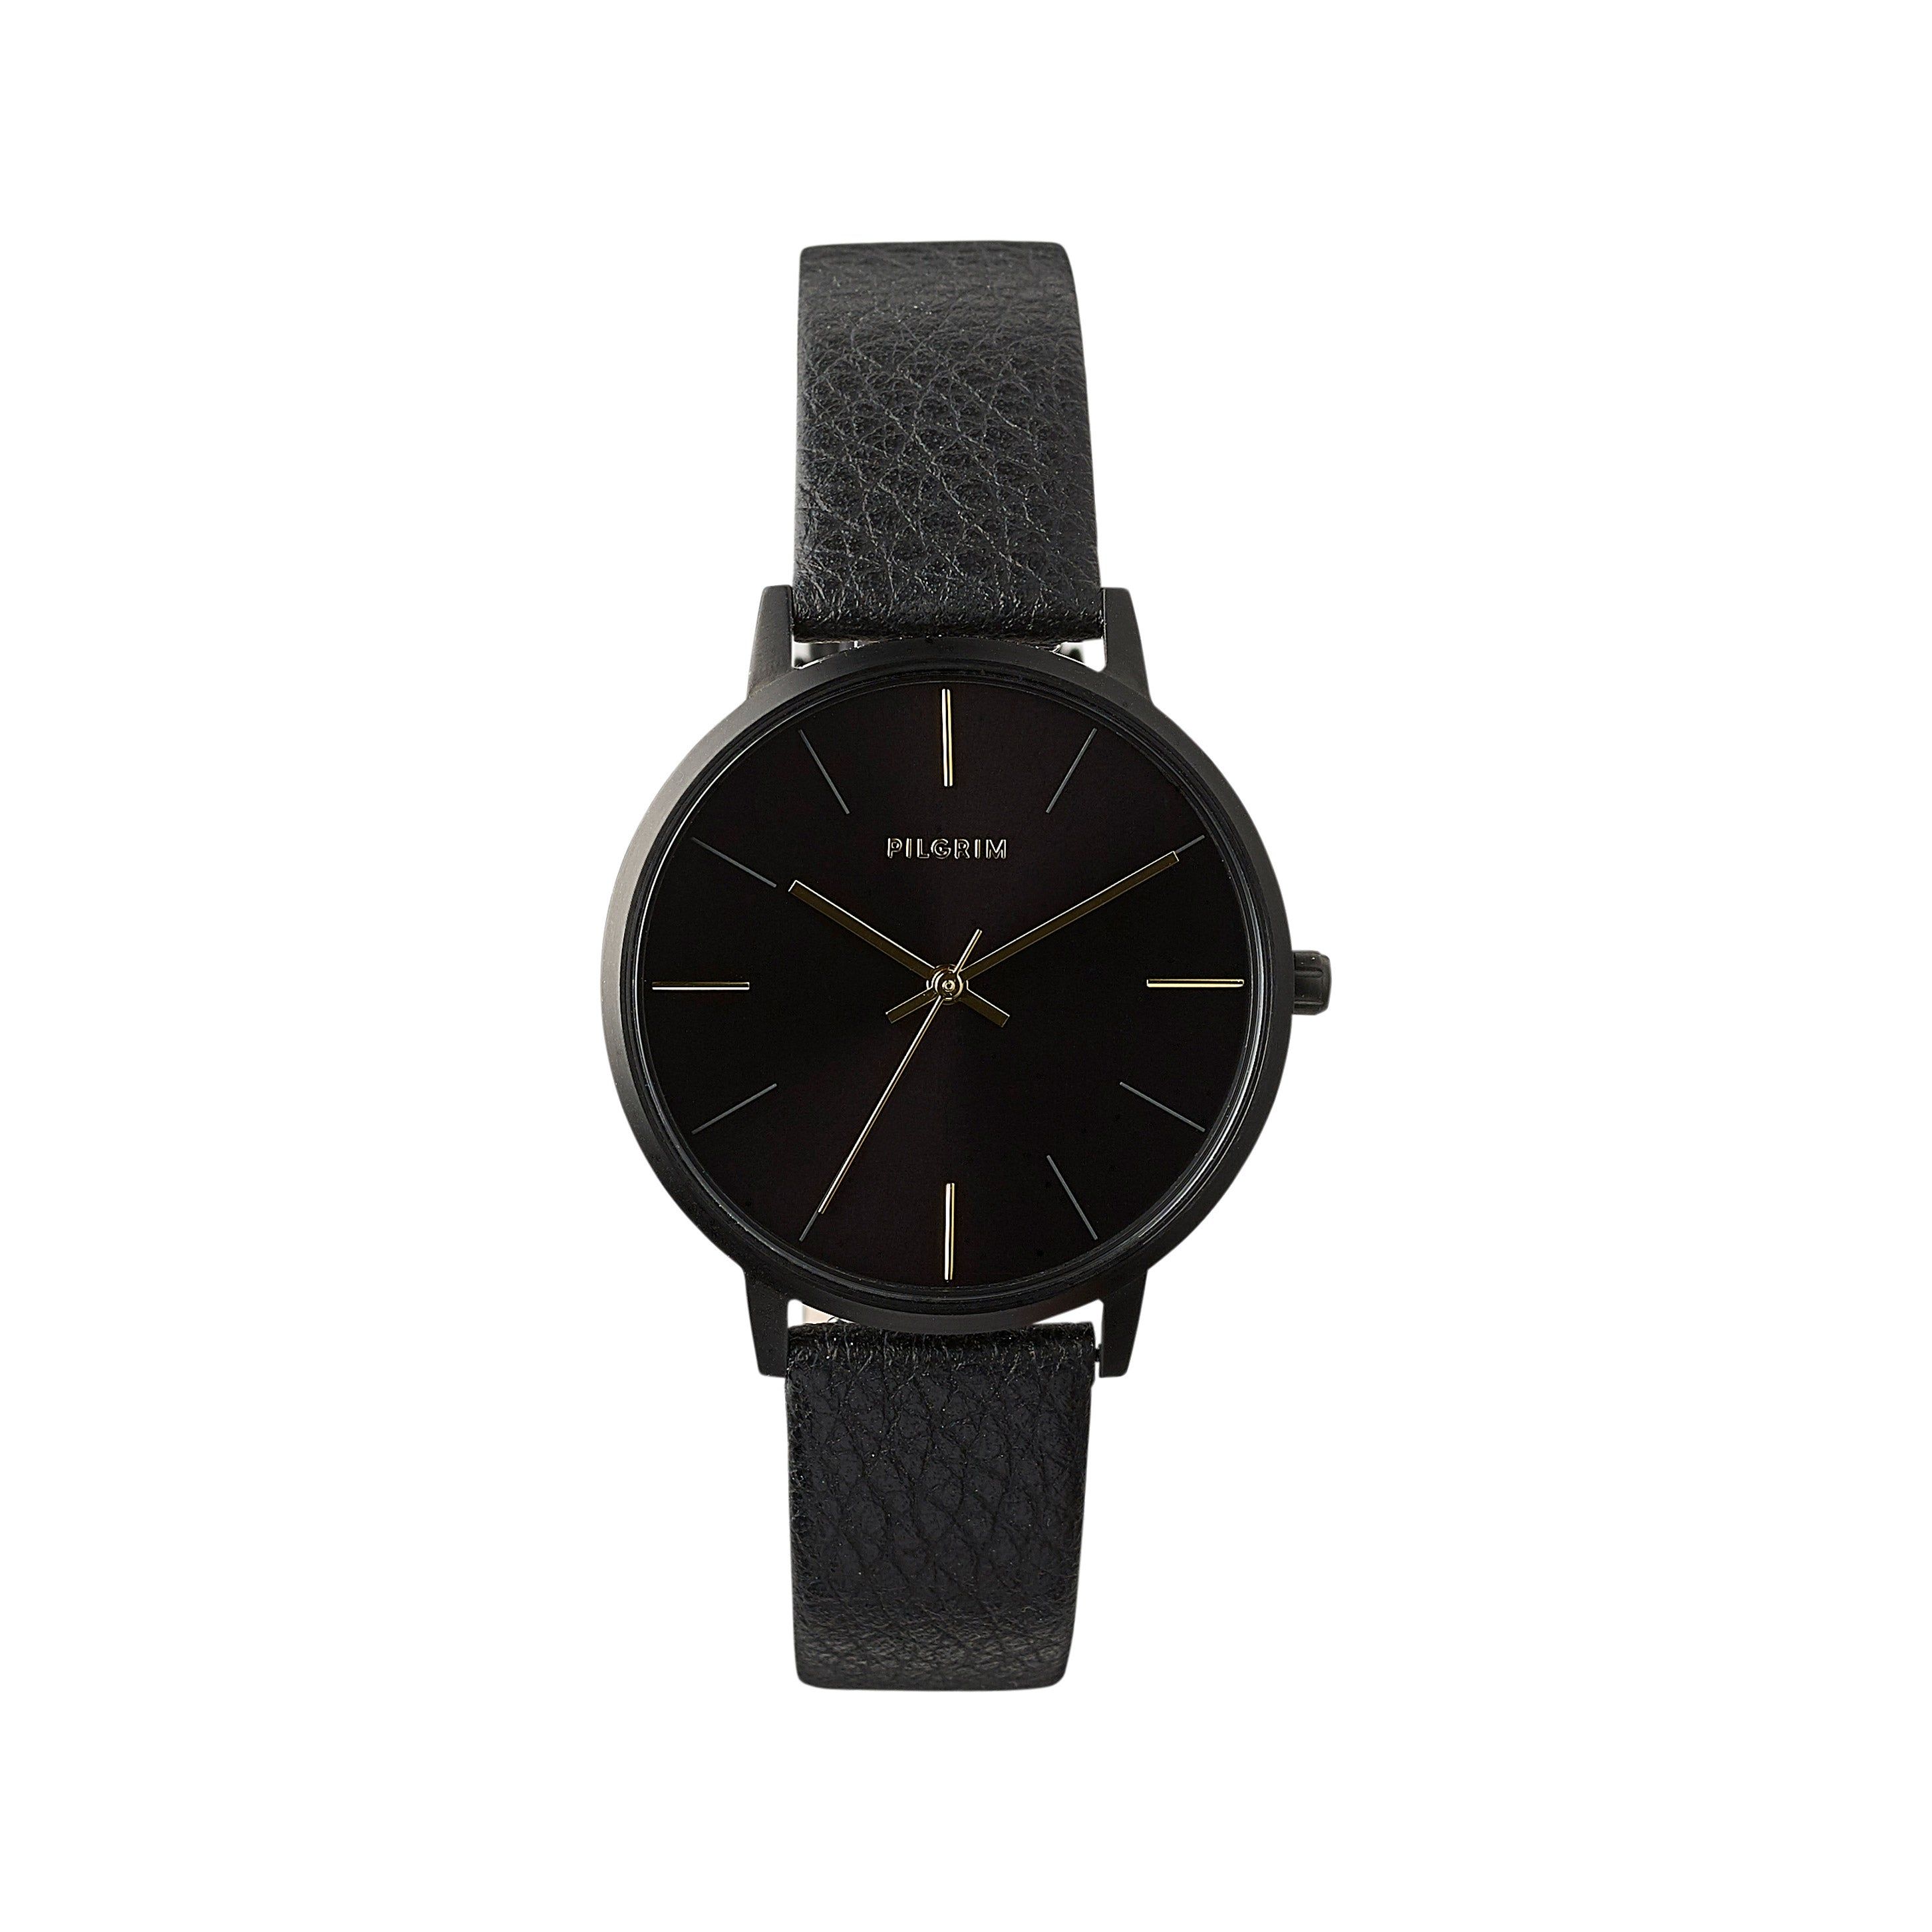 Watch : Sacha : Hematite Color : Black